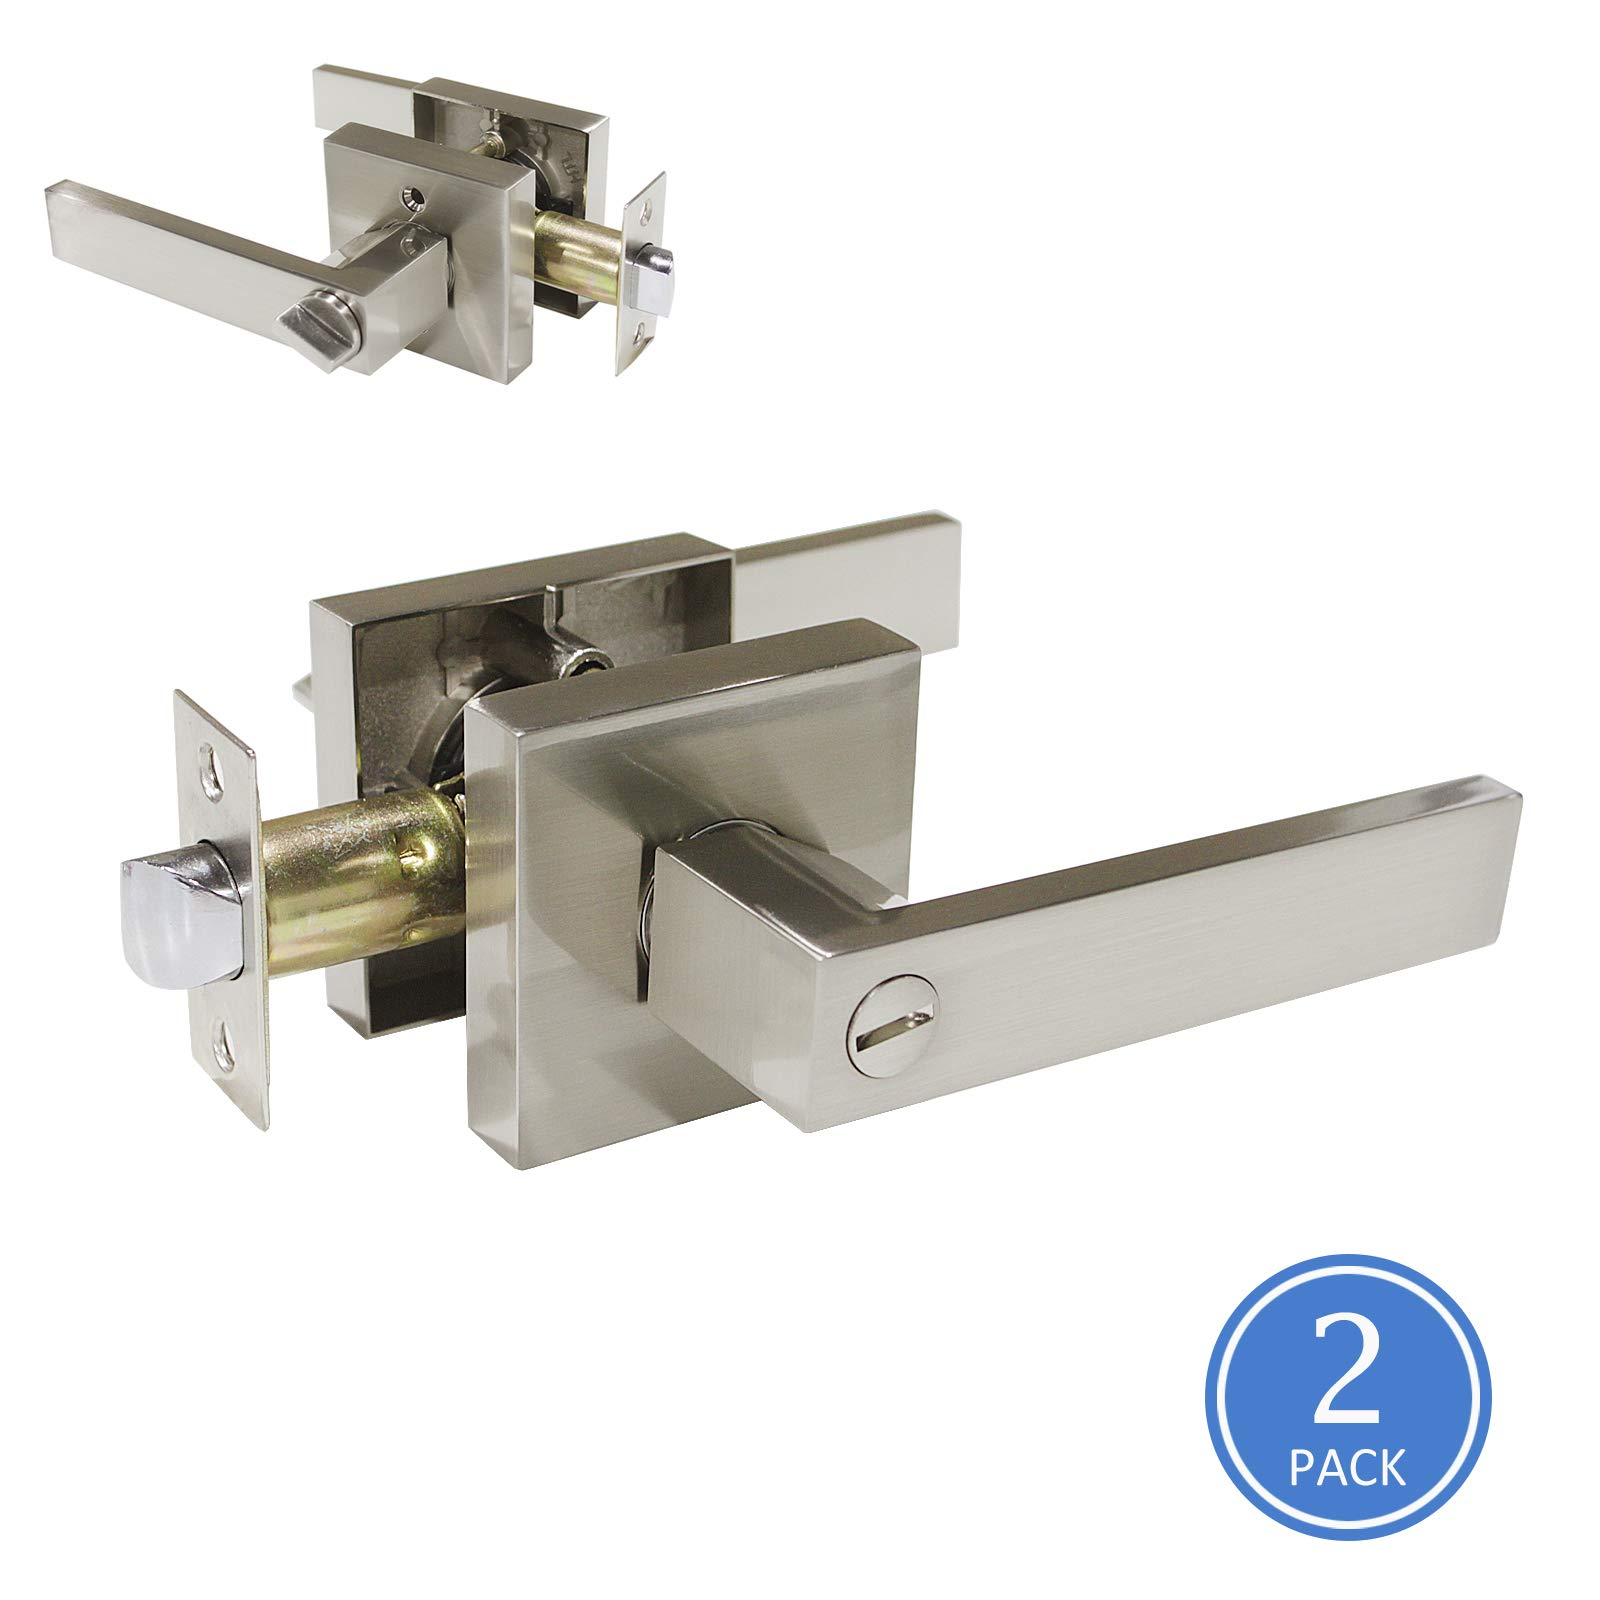 Knobonly Square Bedroom Bathroom Privacy Door Lever Handle Satin Nickel Finish Keyless Door Handleset Locked Inside with Turn-Button 2 Pack